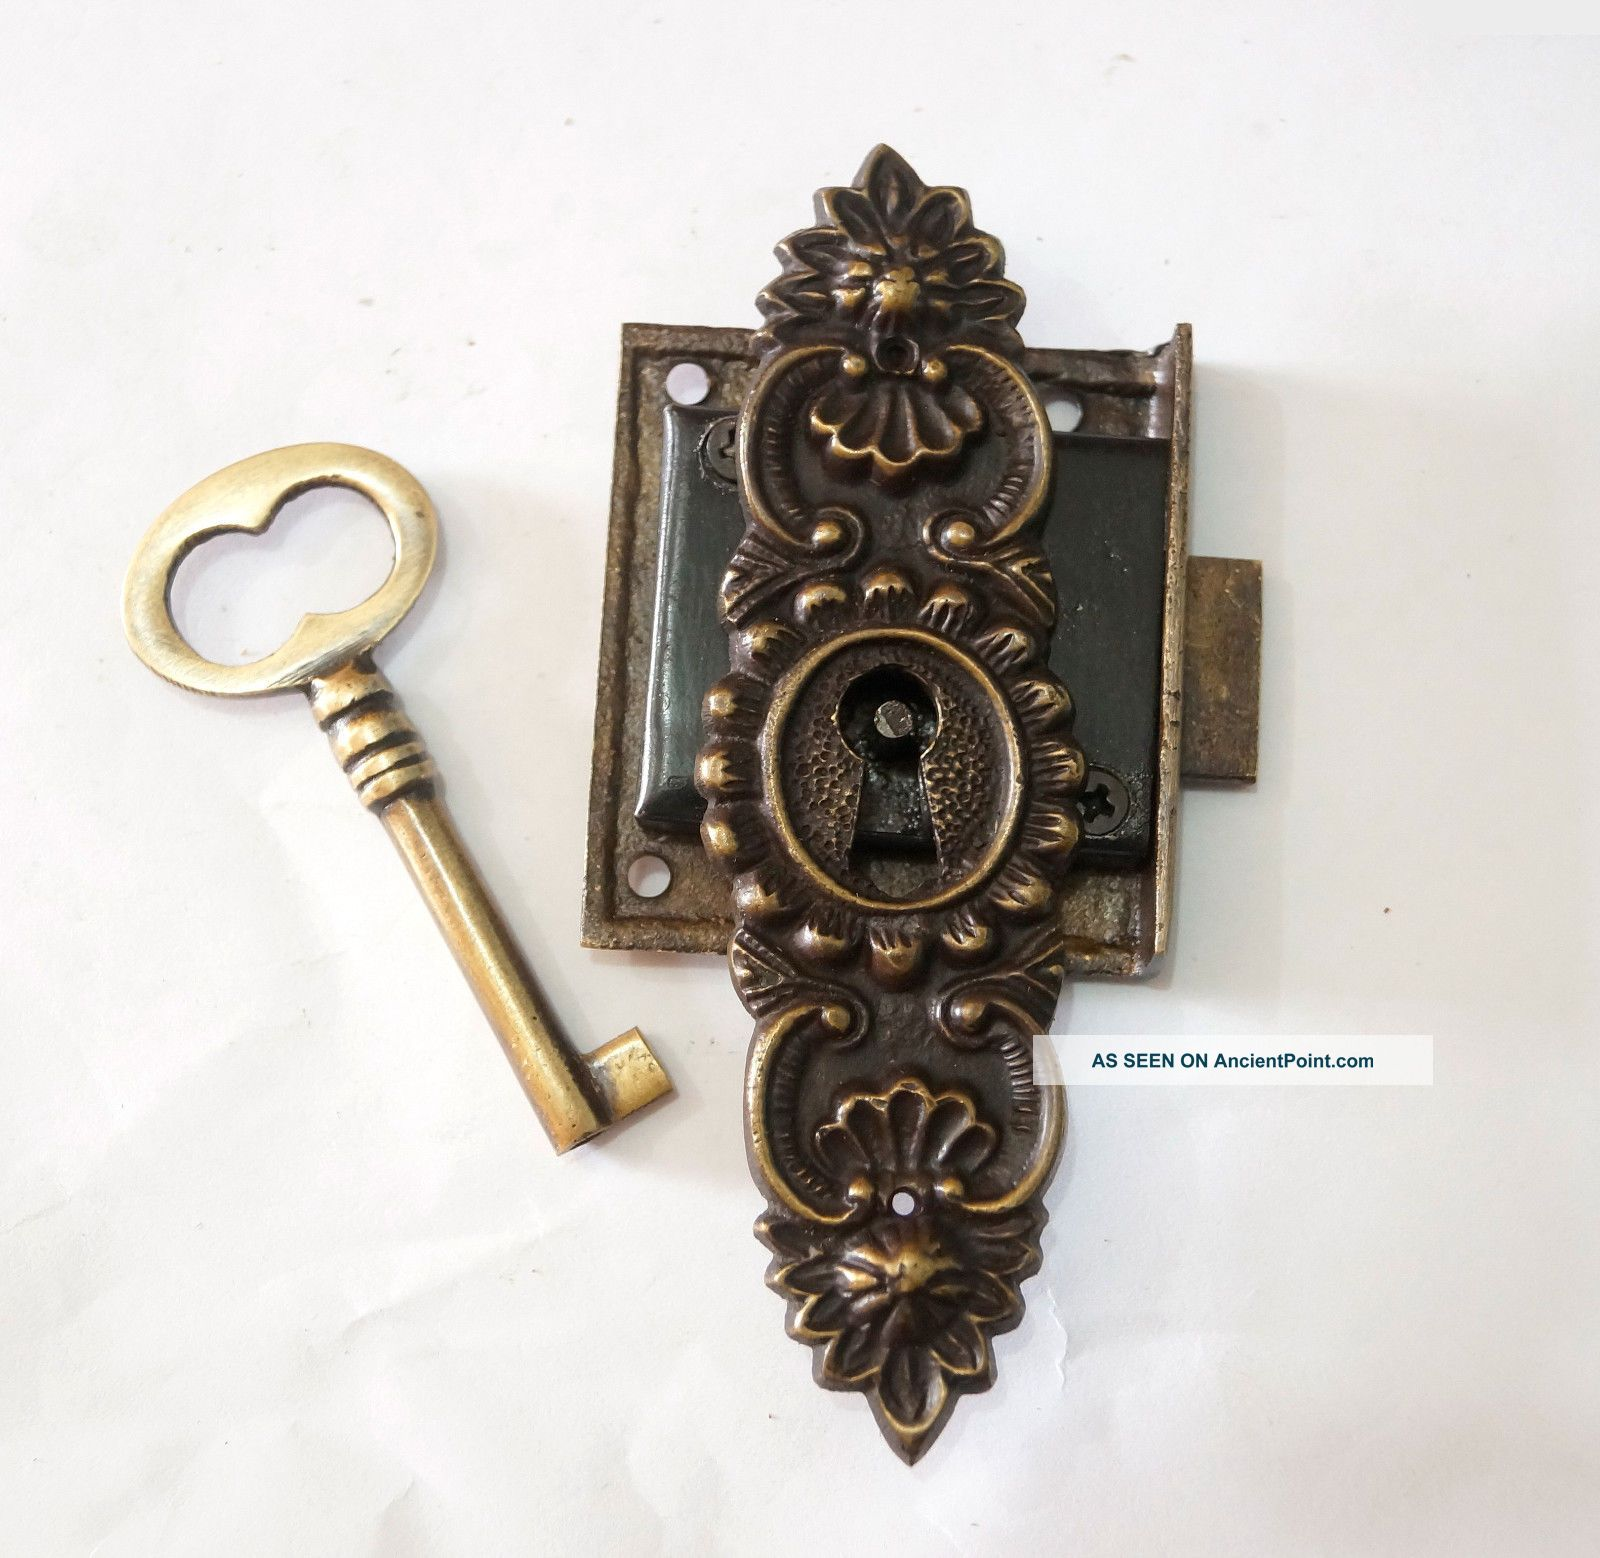 ... Keyhole With Antique Key Lock And Skeleton Keys Locks & Keys photo